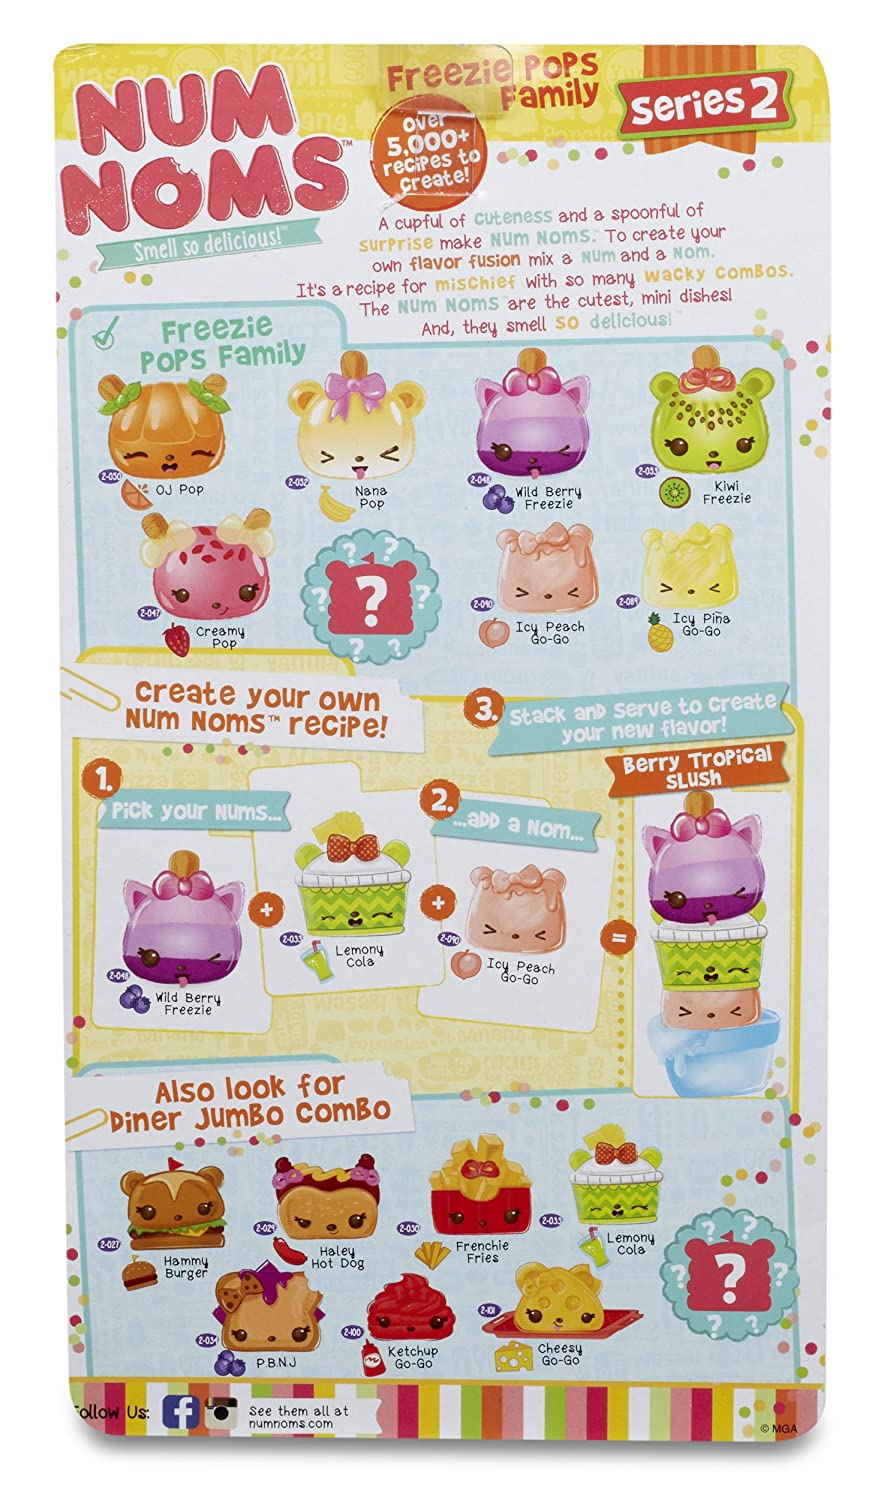 Scented 8-Pack Freezie Pops Family Num Noms Series 2